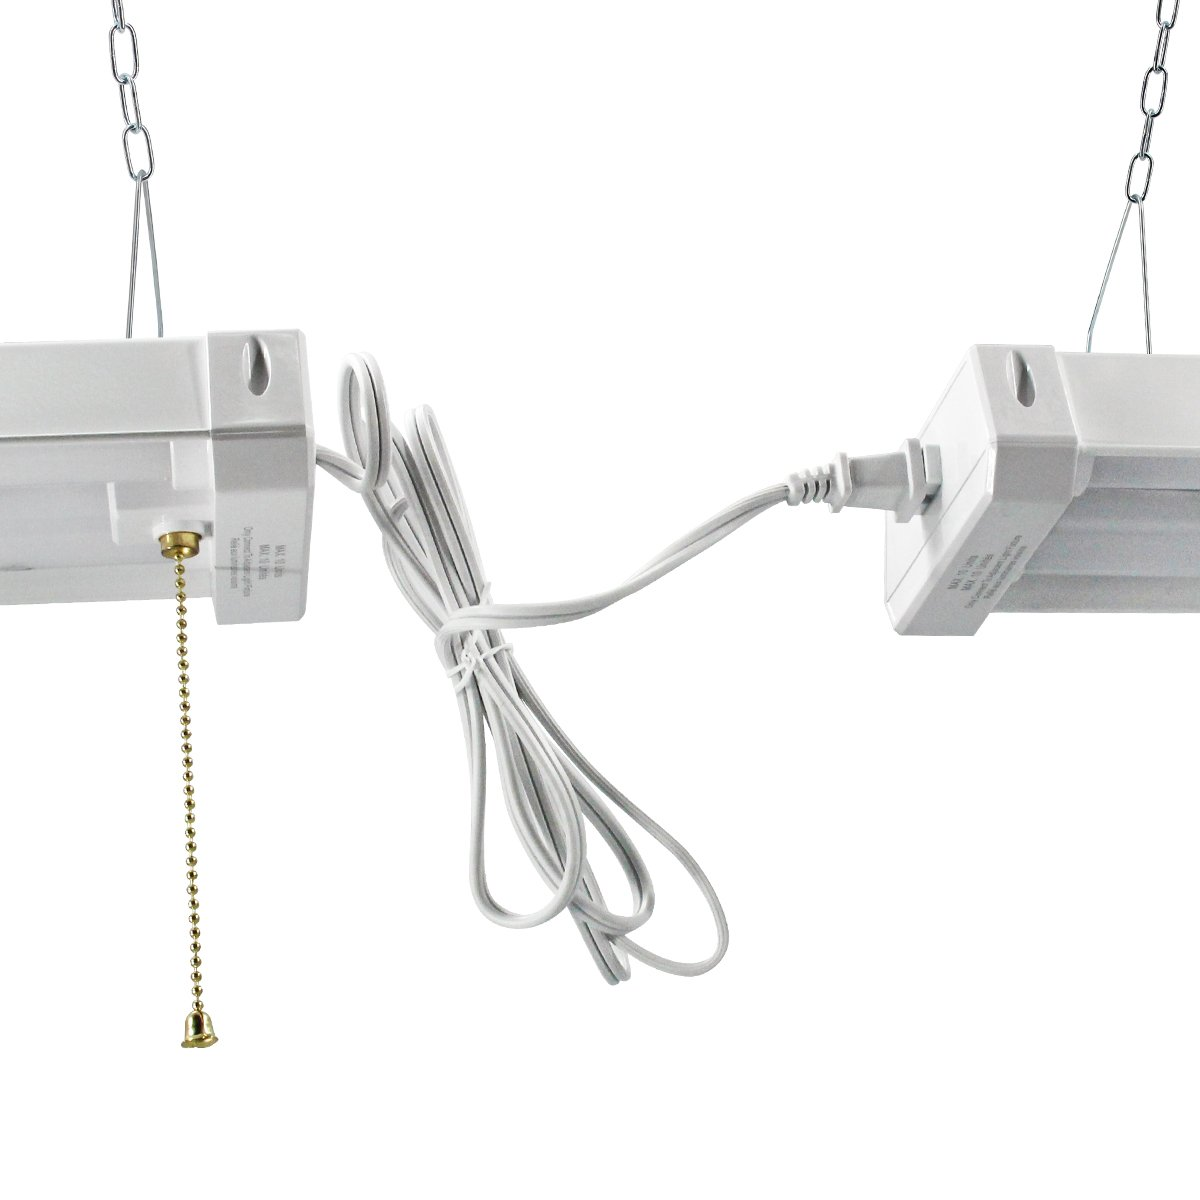 the oooled 42w led garage lights are ideal for auto shops, carports, garages ,